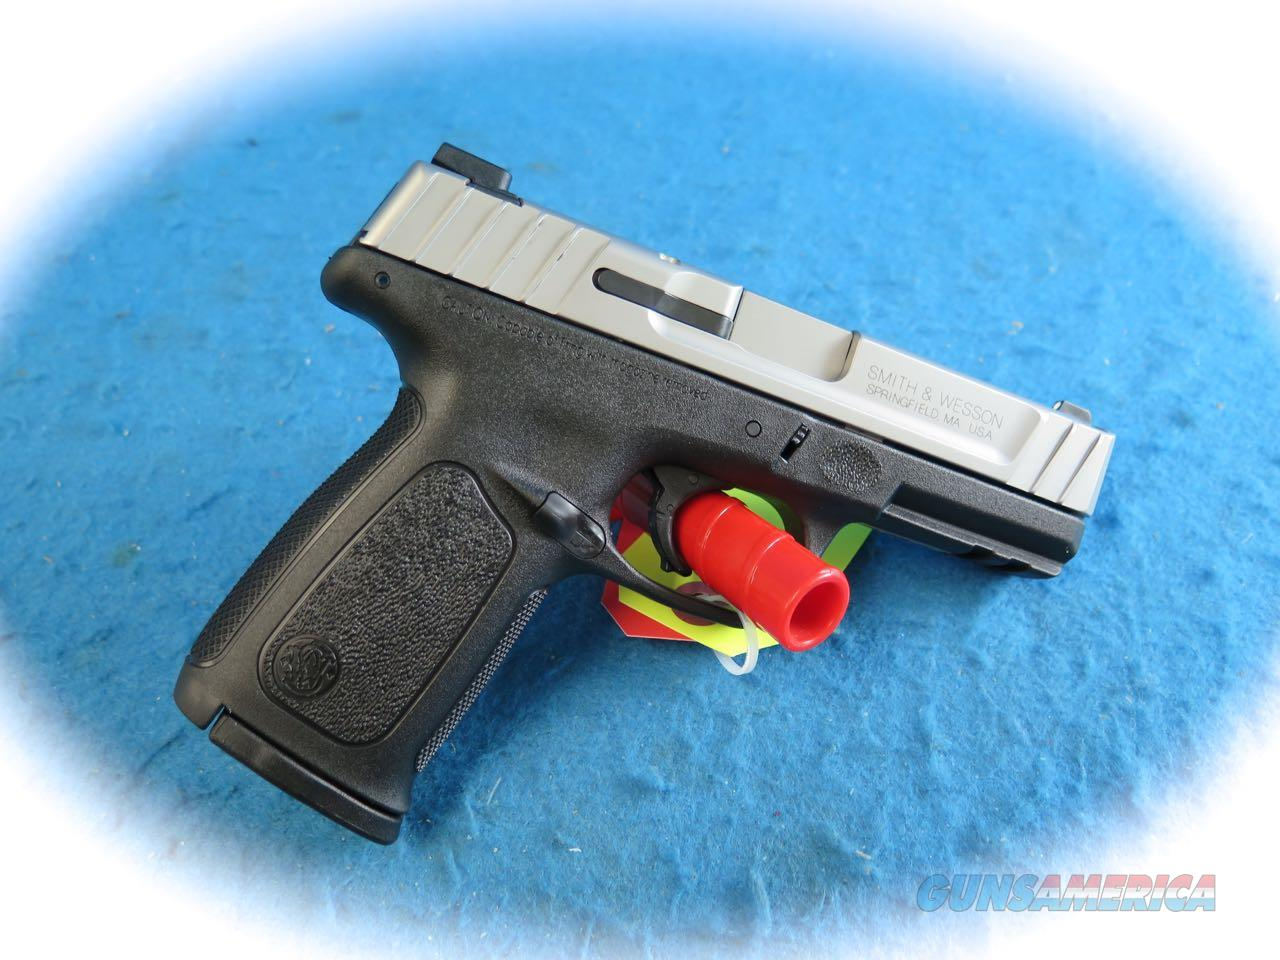 Smith & Wesson SD9 VE 9mm Semi Auto Pistol **New** On Sale  Guns > Pistols > Smith & Wesson Pistols - Autos > Polymer Frame